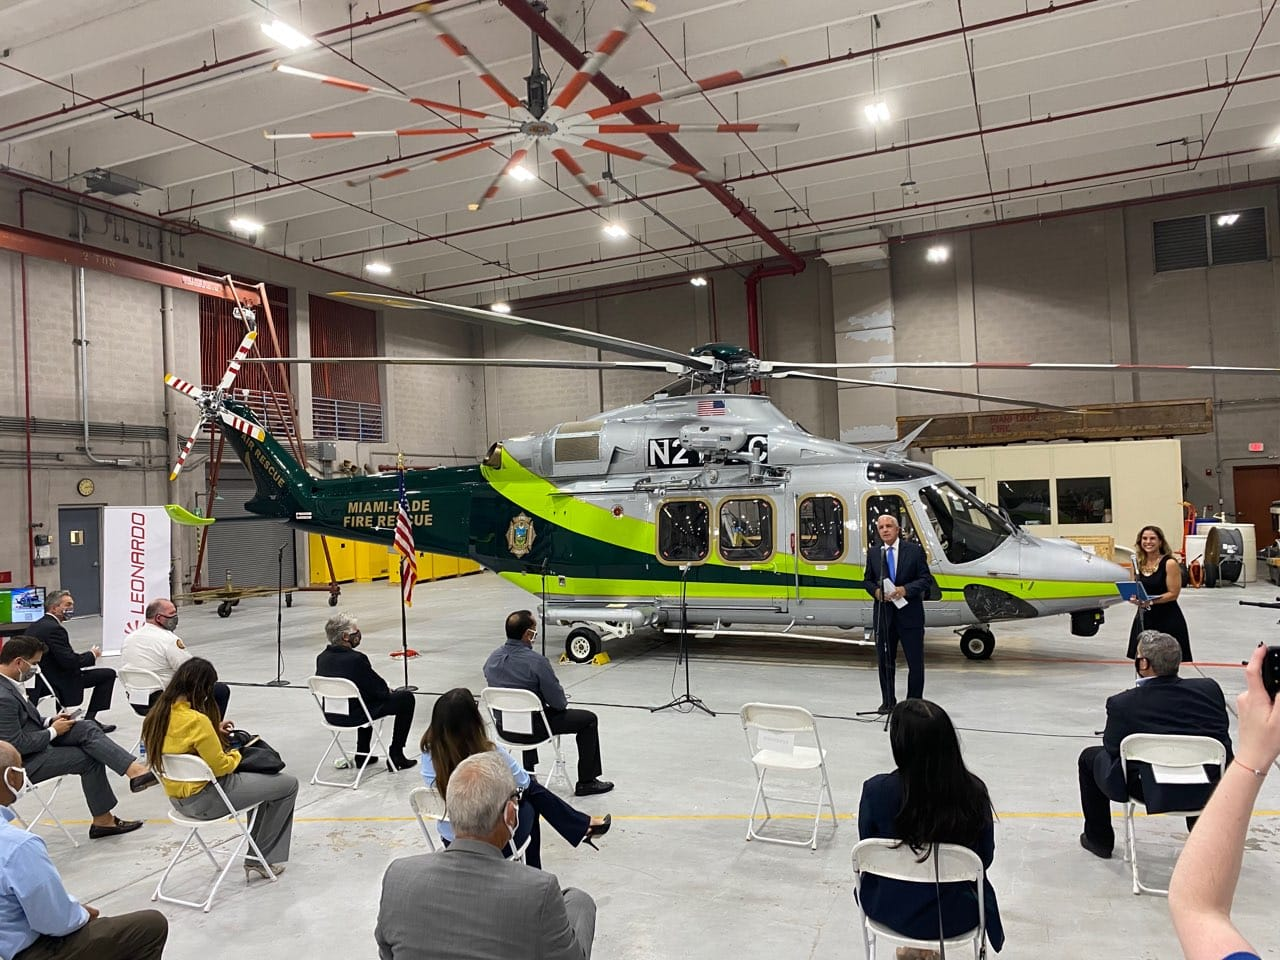 Miami-Dade Fire Rescue (MDFR) upgrades helicopter fleet with delivery of first AW139 helicopter